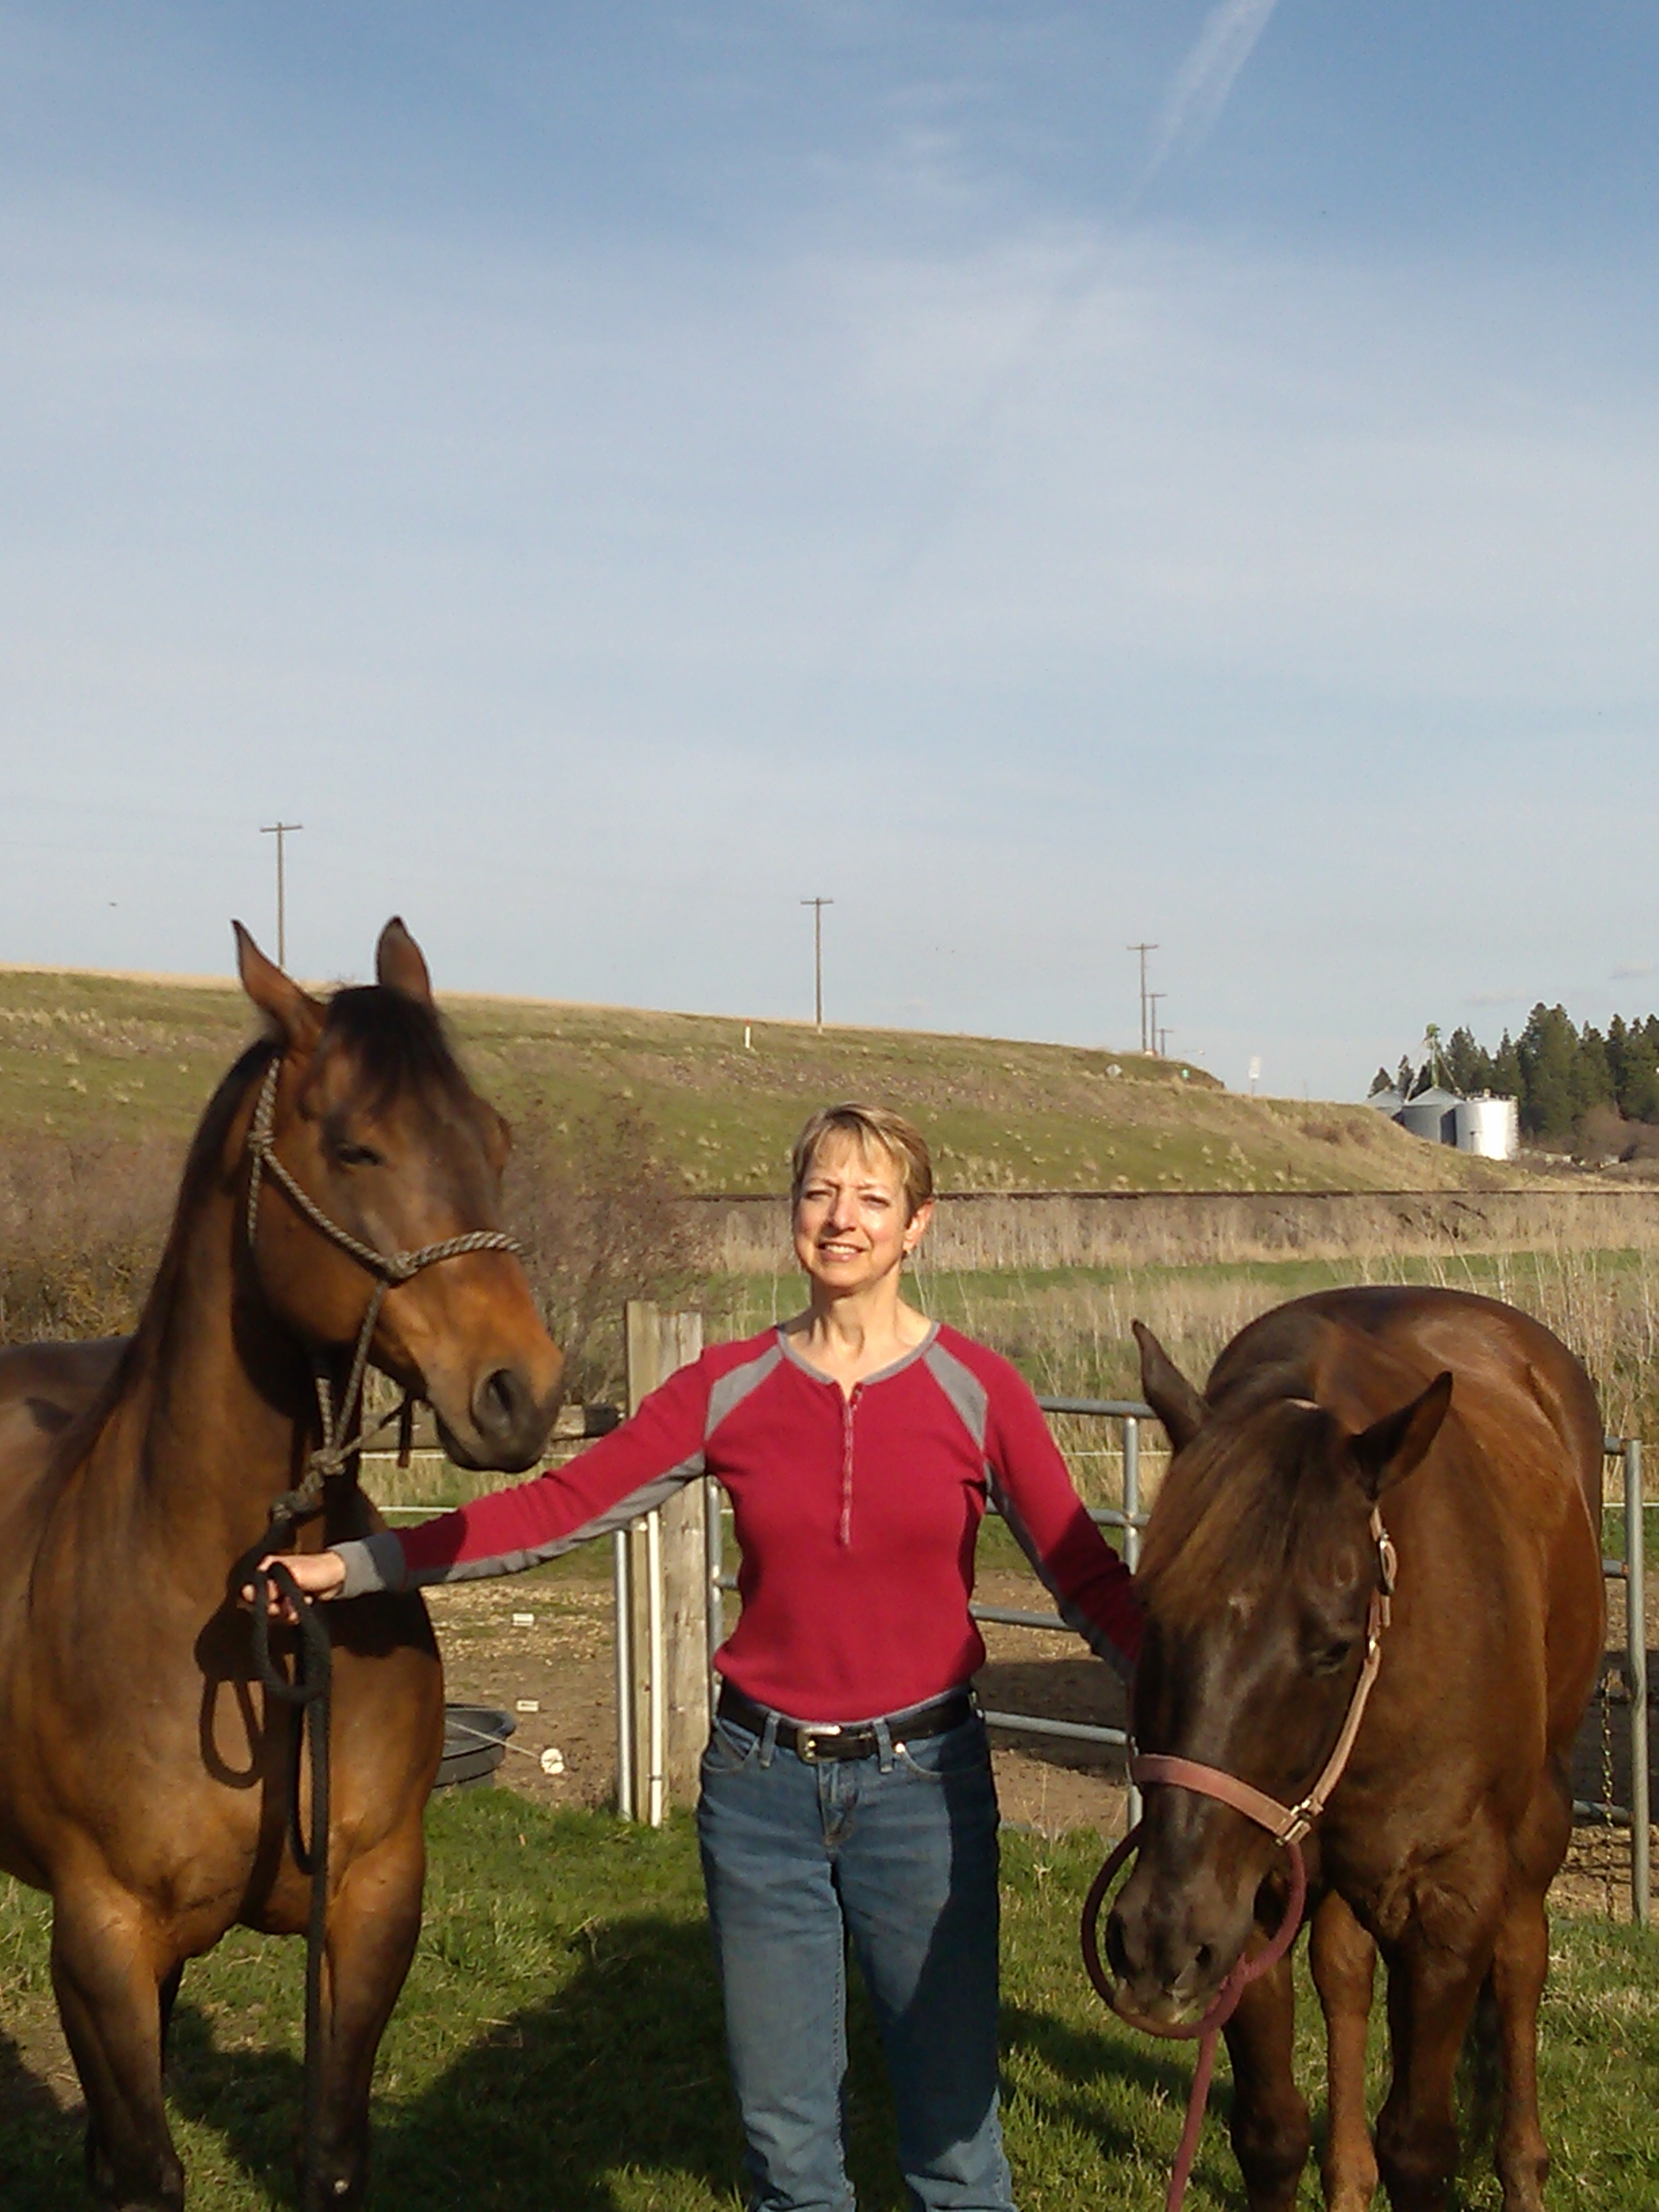 Janet Schmidt operates a horse boarding facility